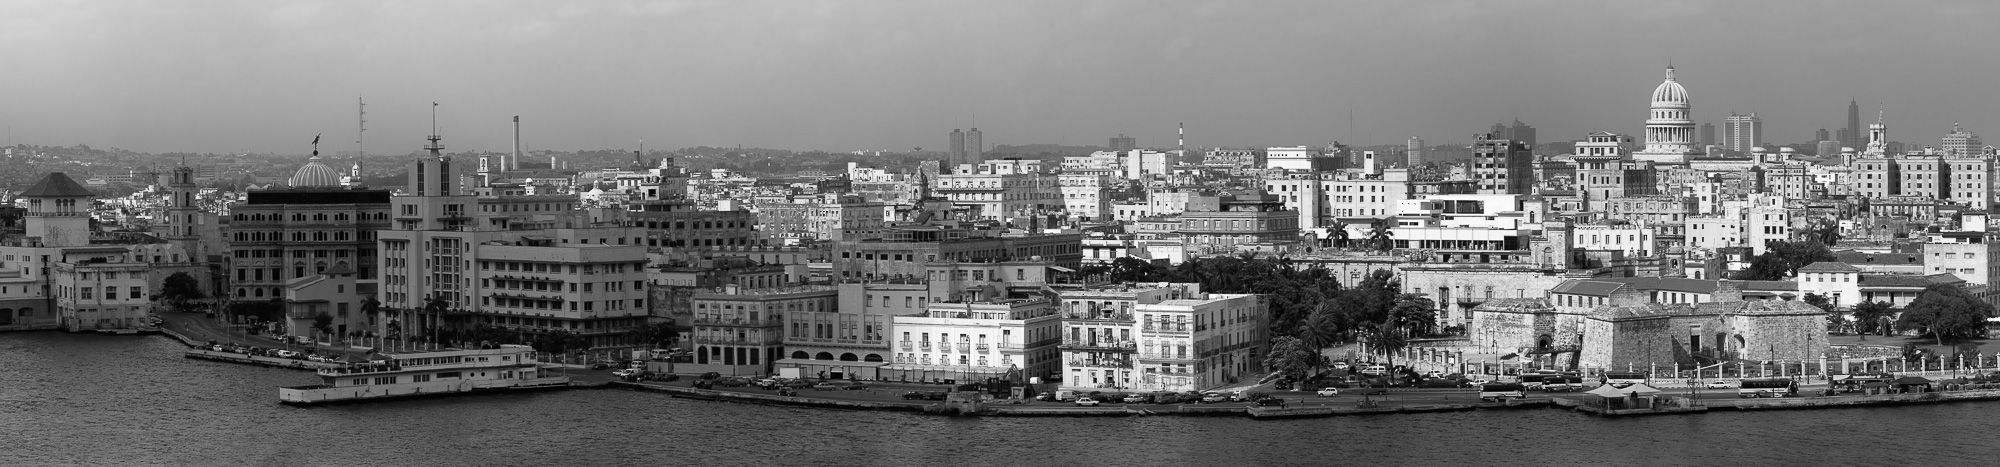 Malecon-Havana-Cityscape-panorama-black-and-white-fine-art.jpg